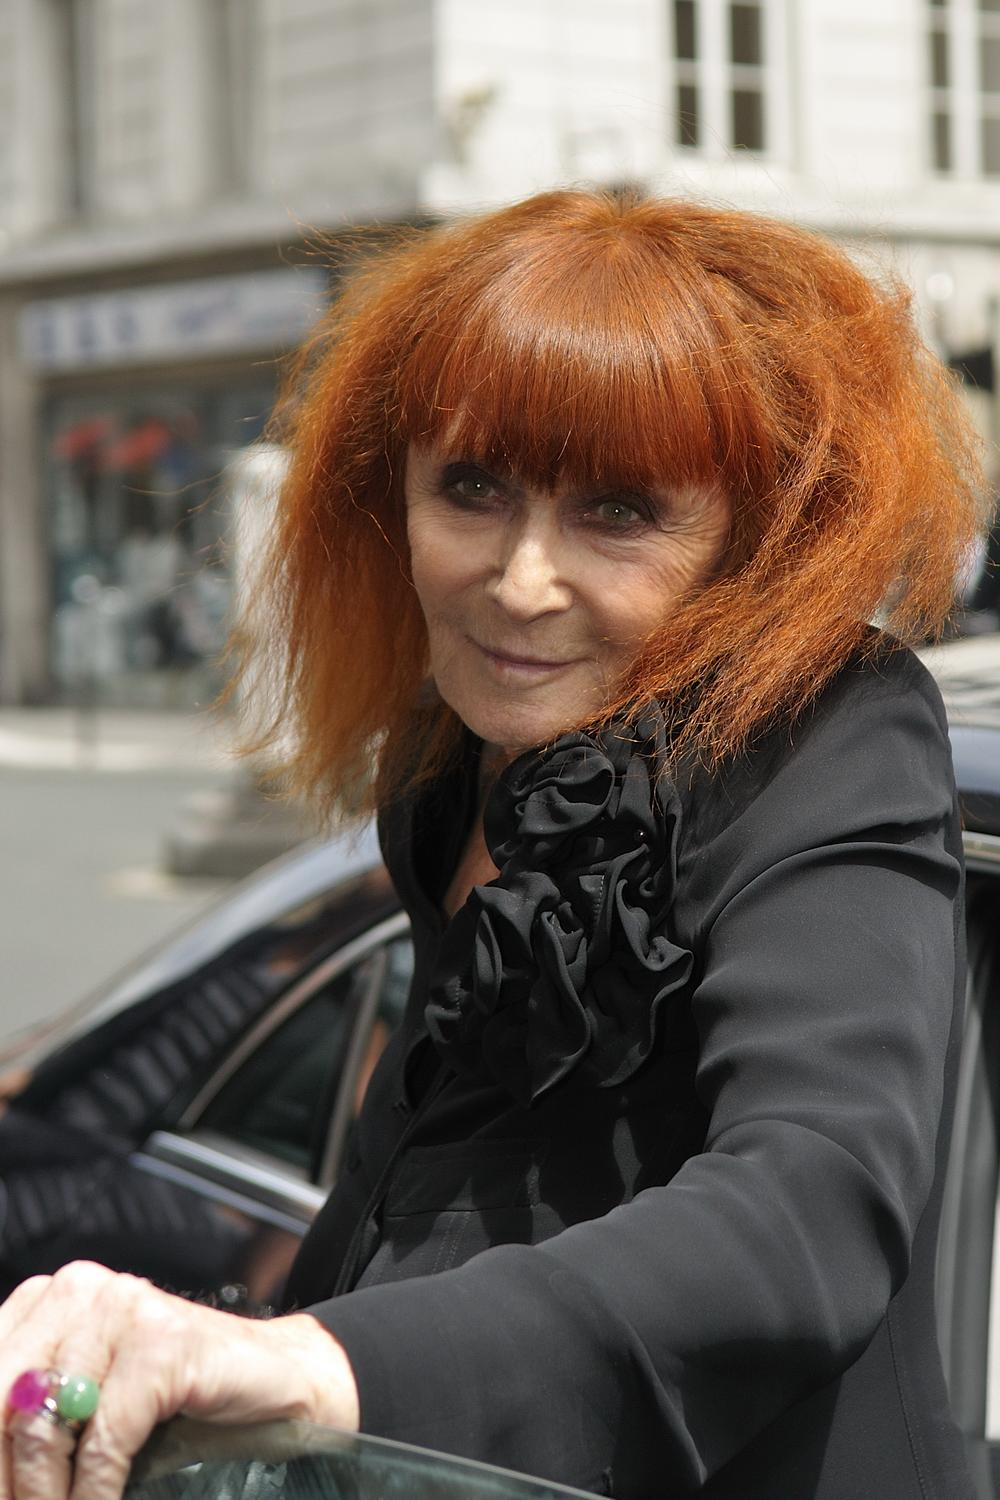 Sonia Rykiel earned a  million dollar salary, leaving the net worth at 2204 million in 2017